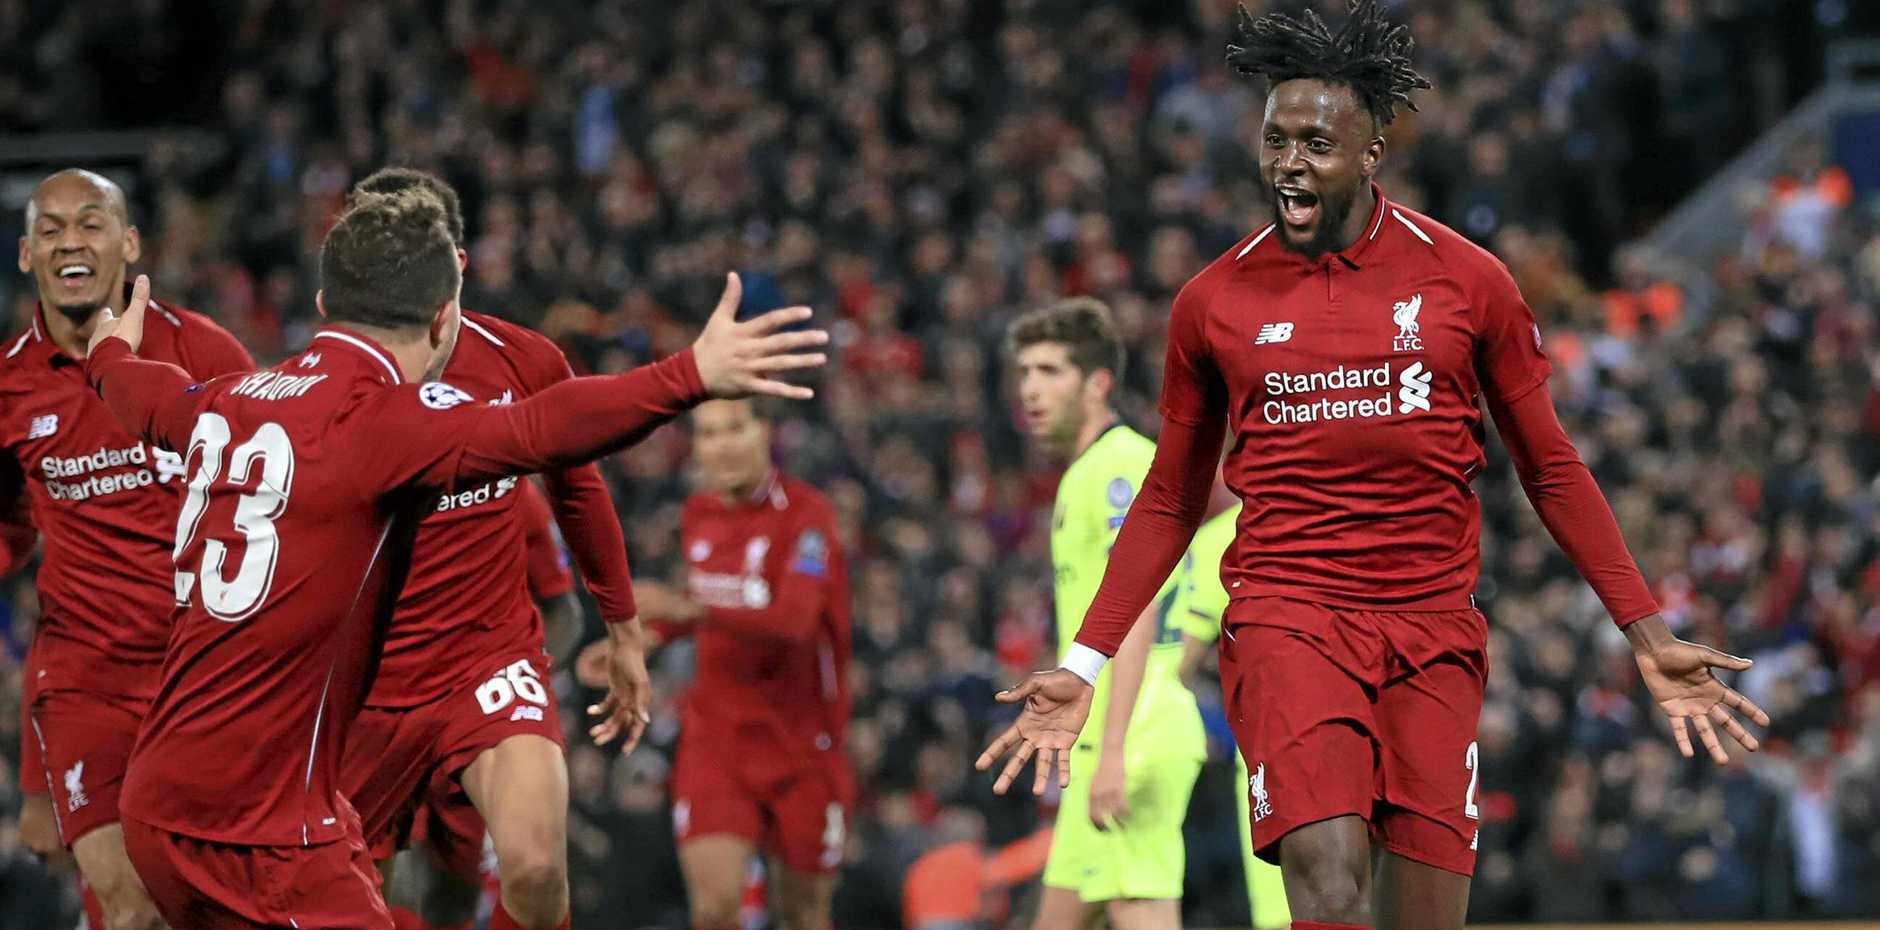 Liverpool's Divock Origi, right, celebrates scoring his side's fourth goal of the game during the Champions League Semi Final, second leg soccer match between Liverpool and Barcelona at Anfield, Liverpool, England, Tuesday, May 7, 2019. (Peter Byrne/PA via AP)